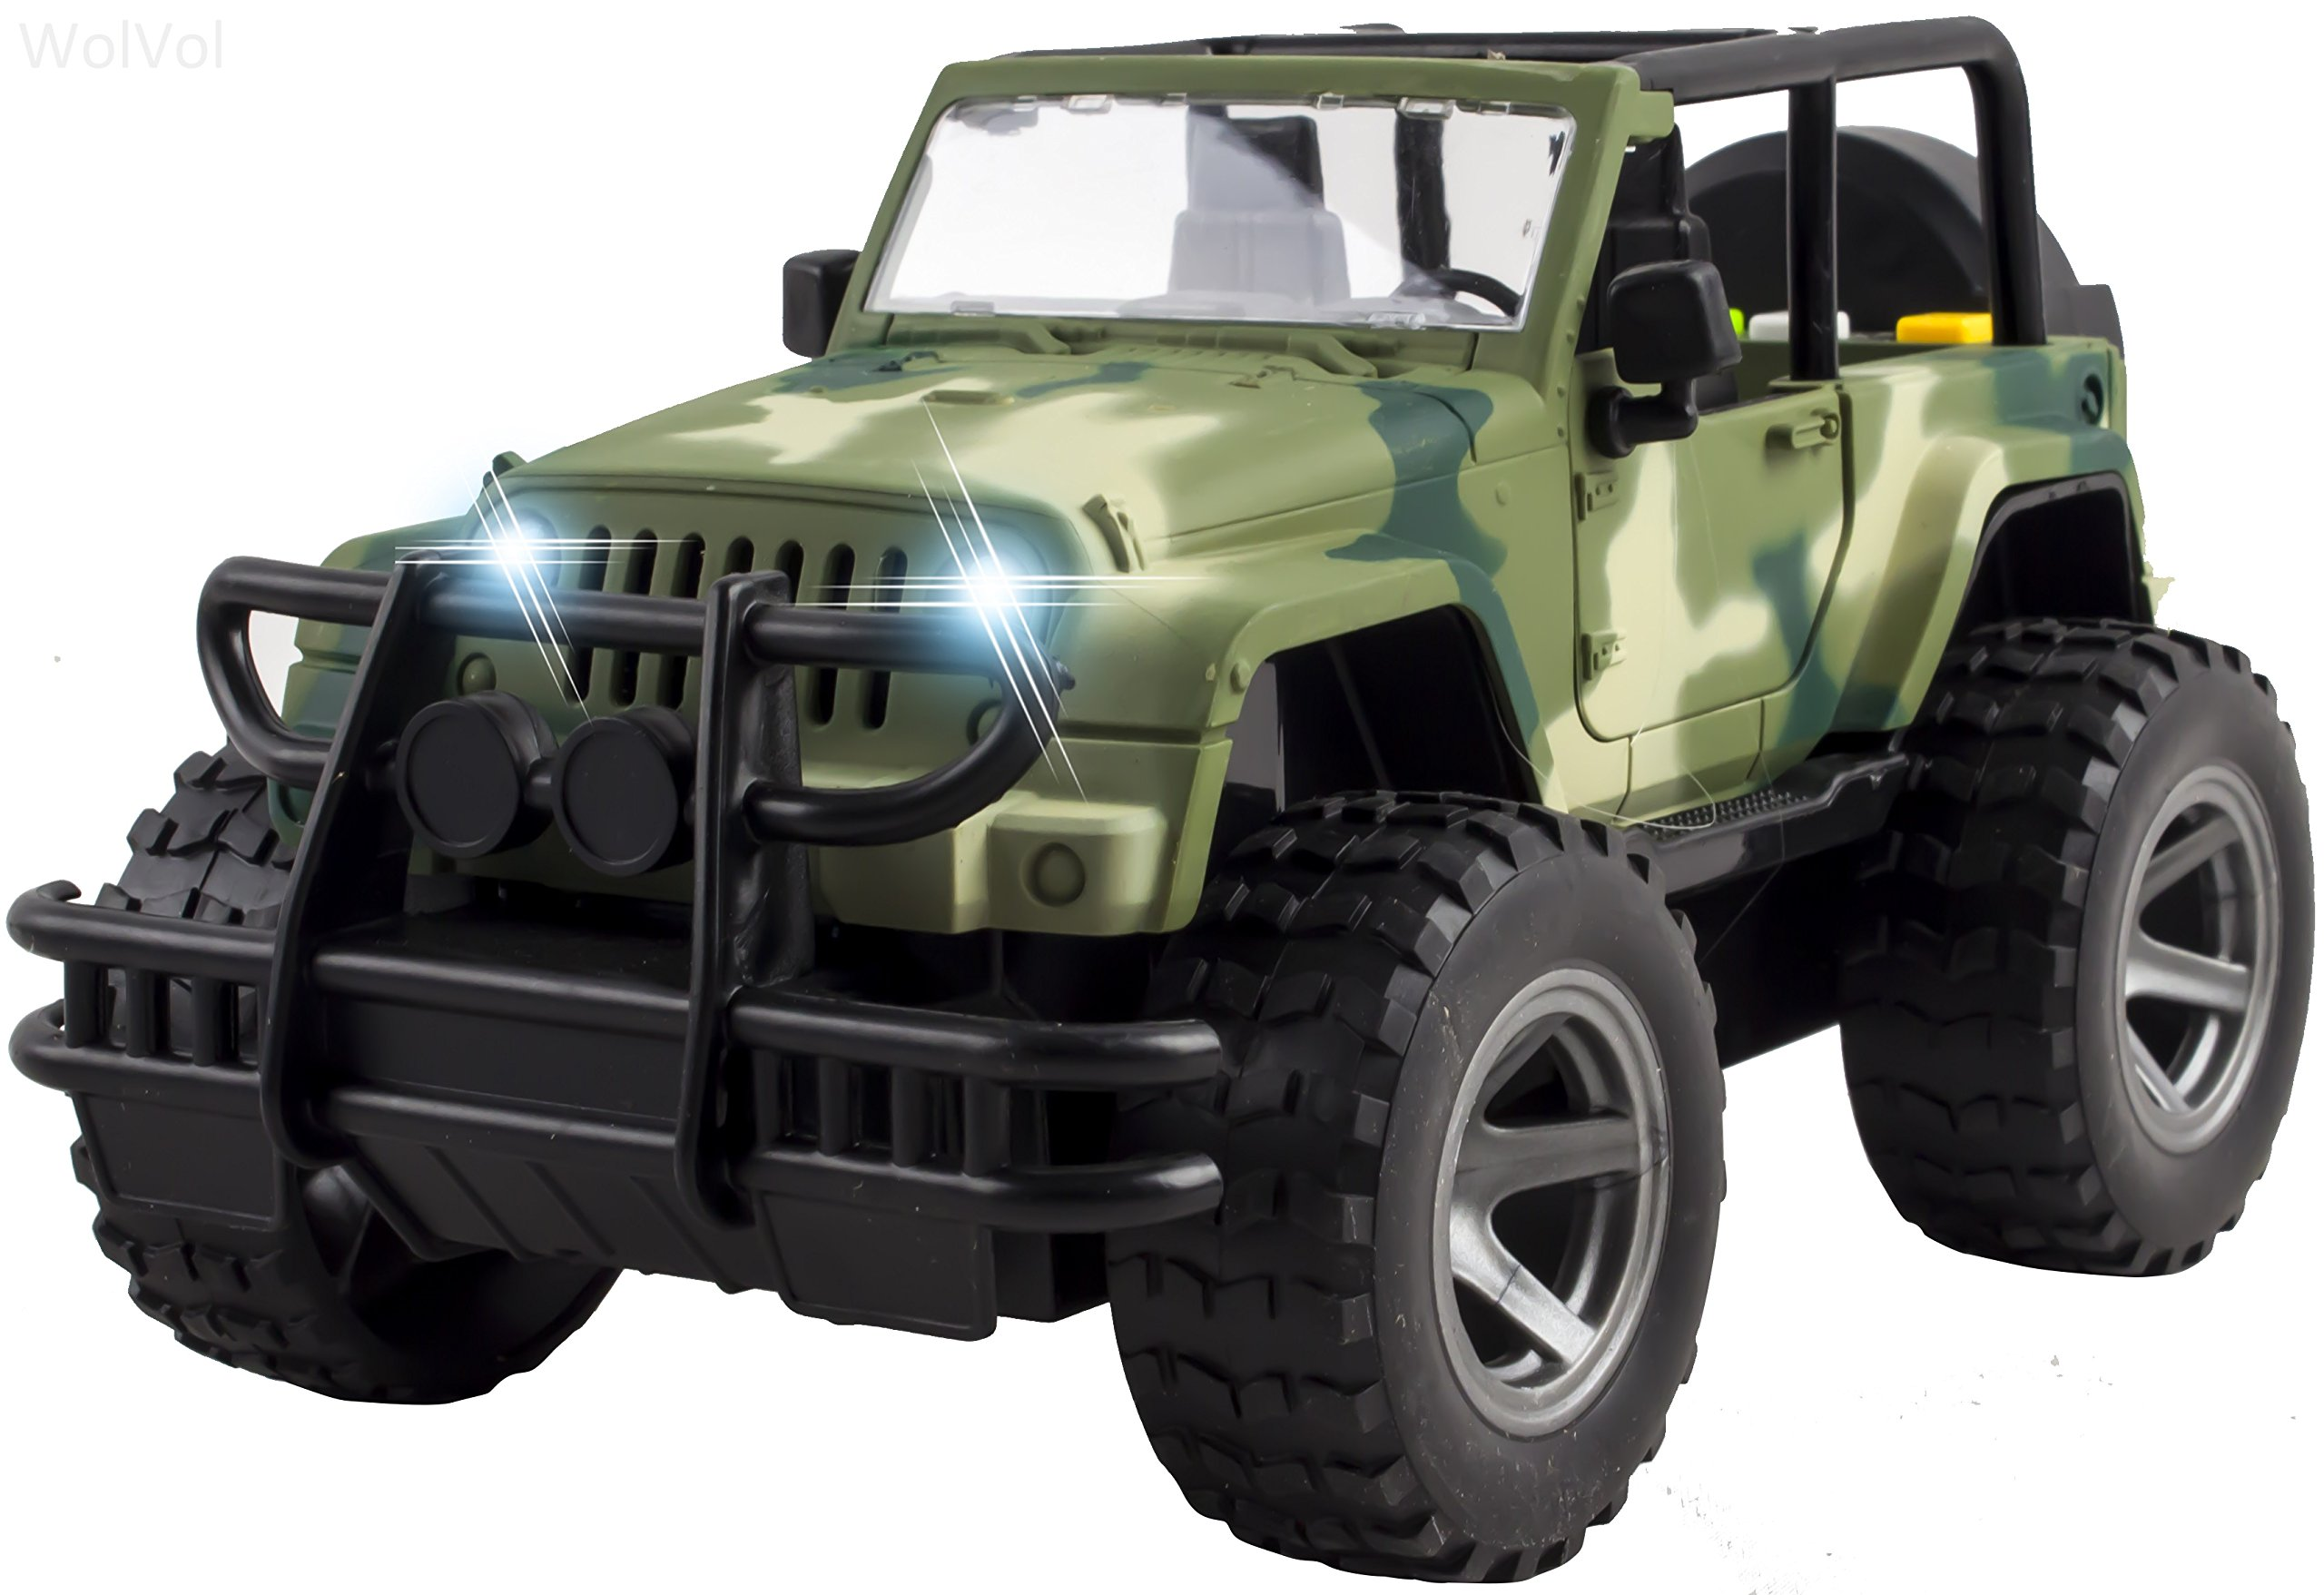 WolVol Off-Road Military Fighter Car Toy with Lights and Sound, Friction Powered, Can Open The 2 Doors